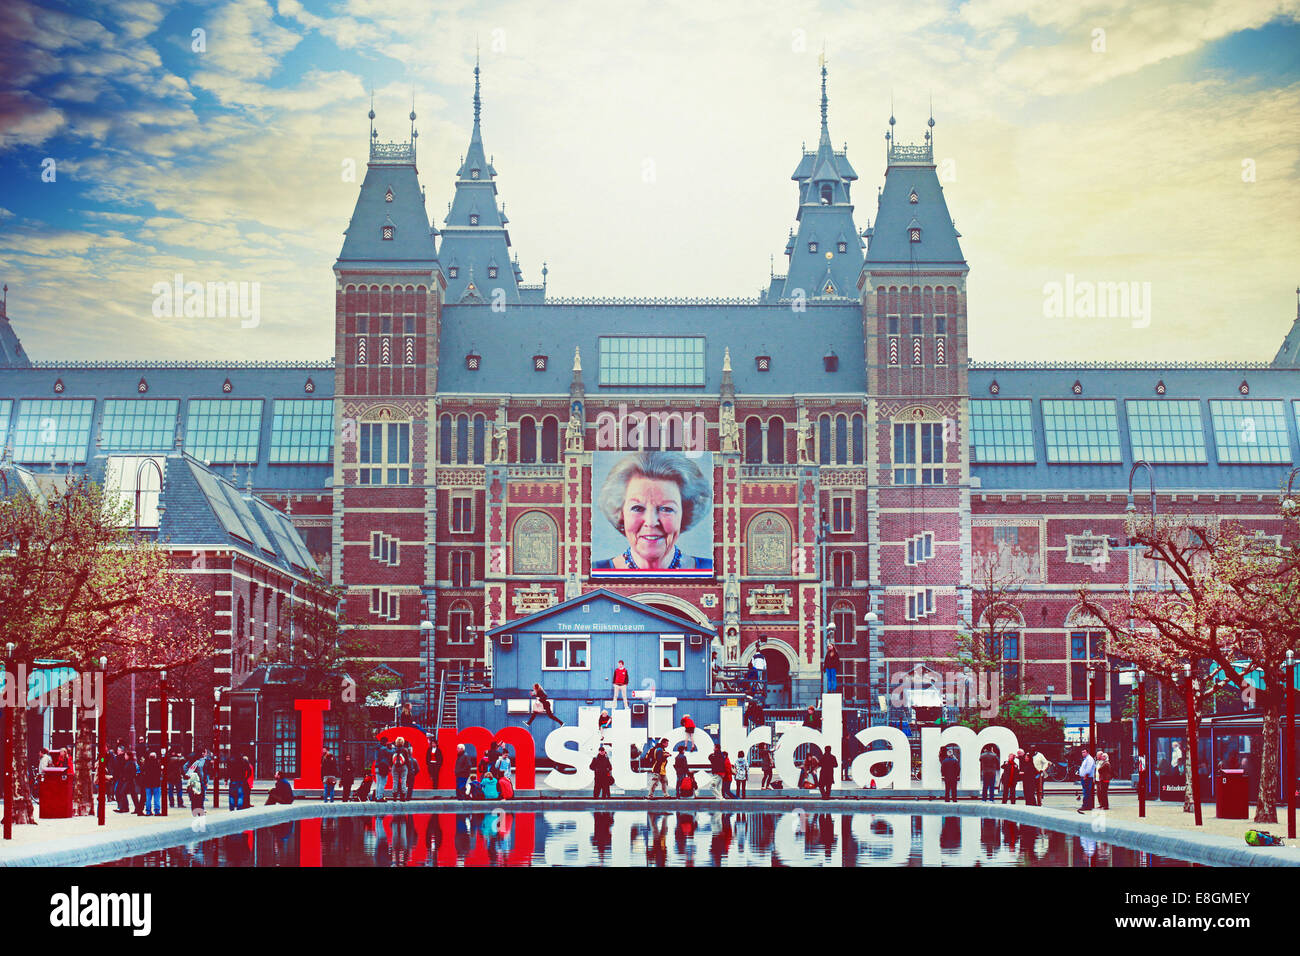 Pays-bas, Amsterdam, Rijksmuseum Vue de face Photo Stock